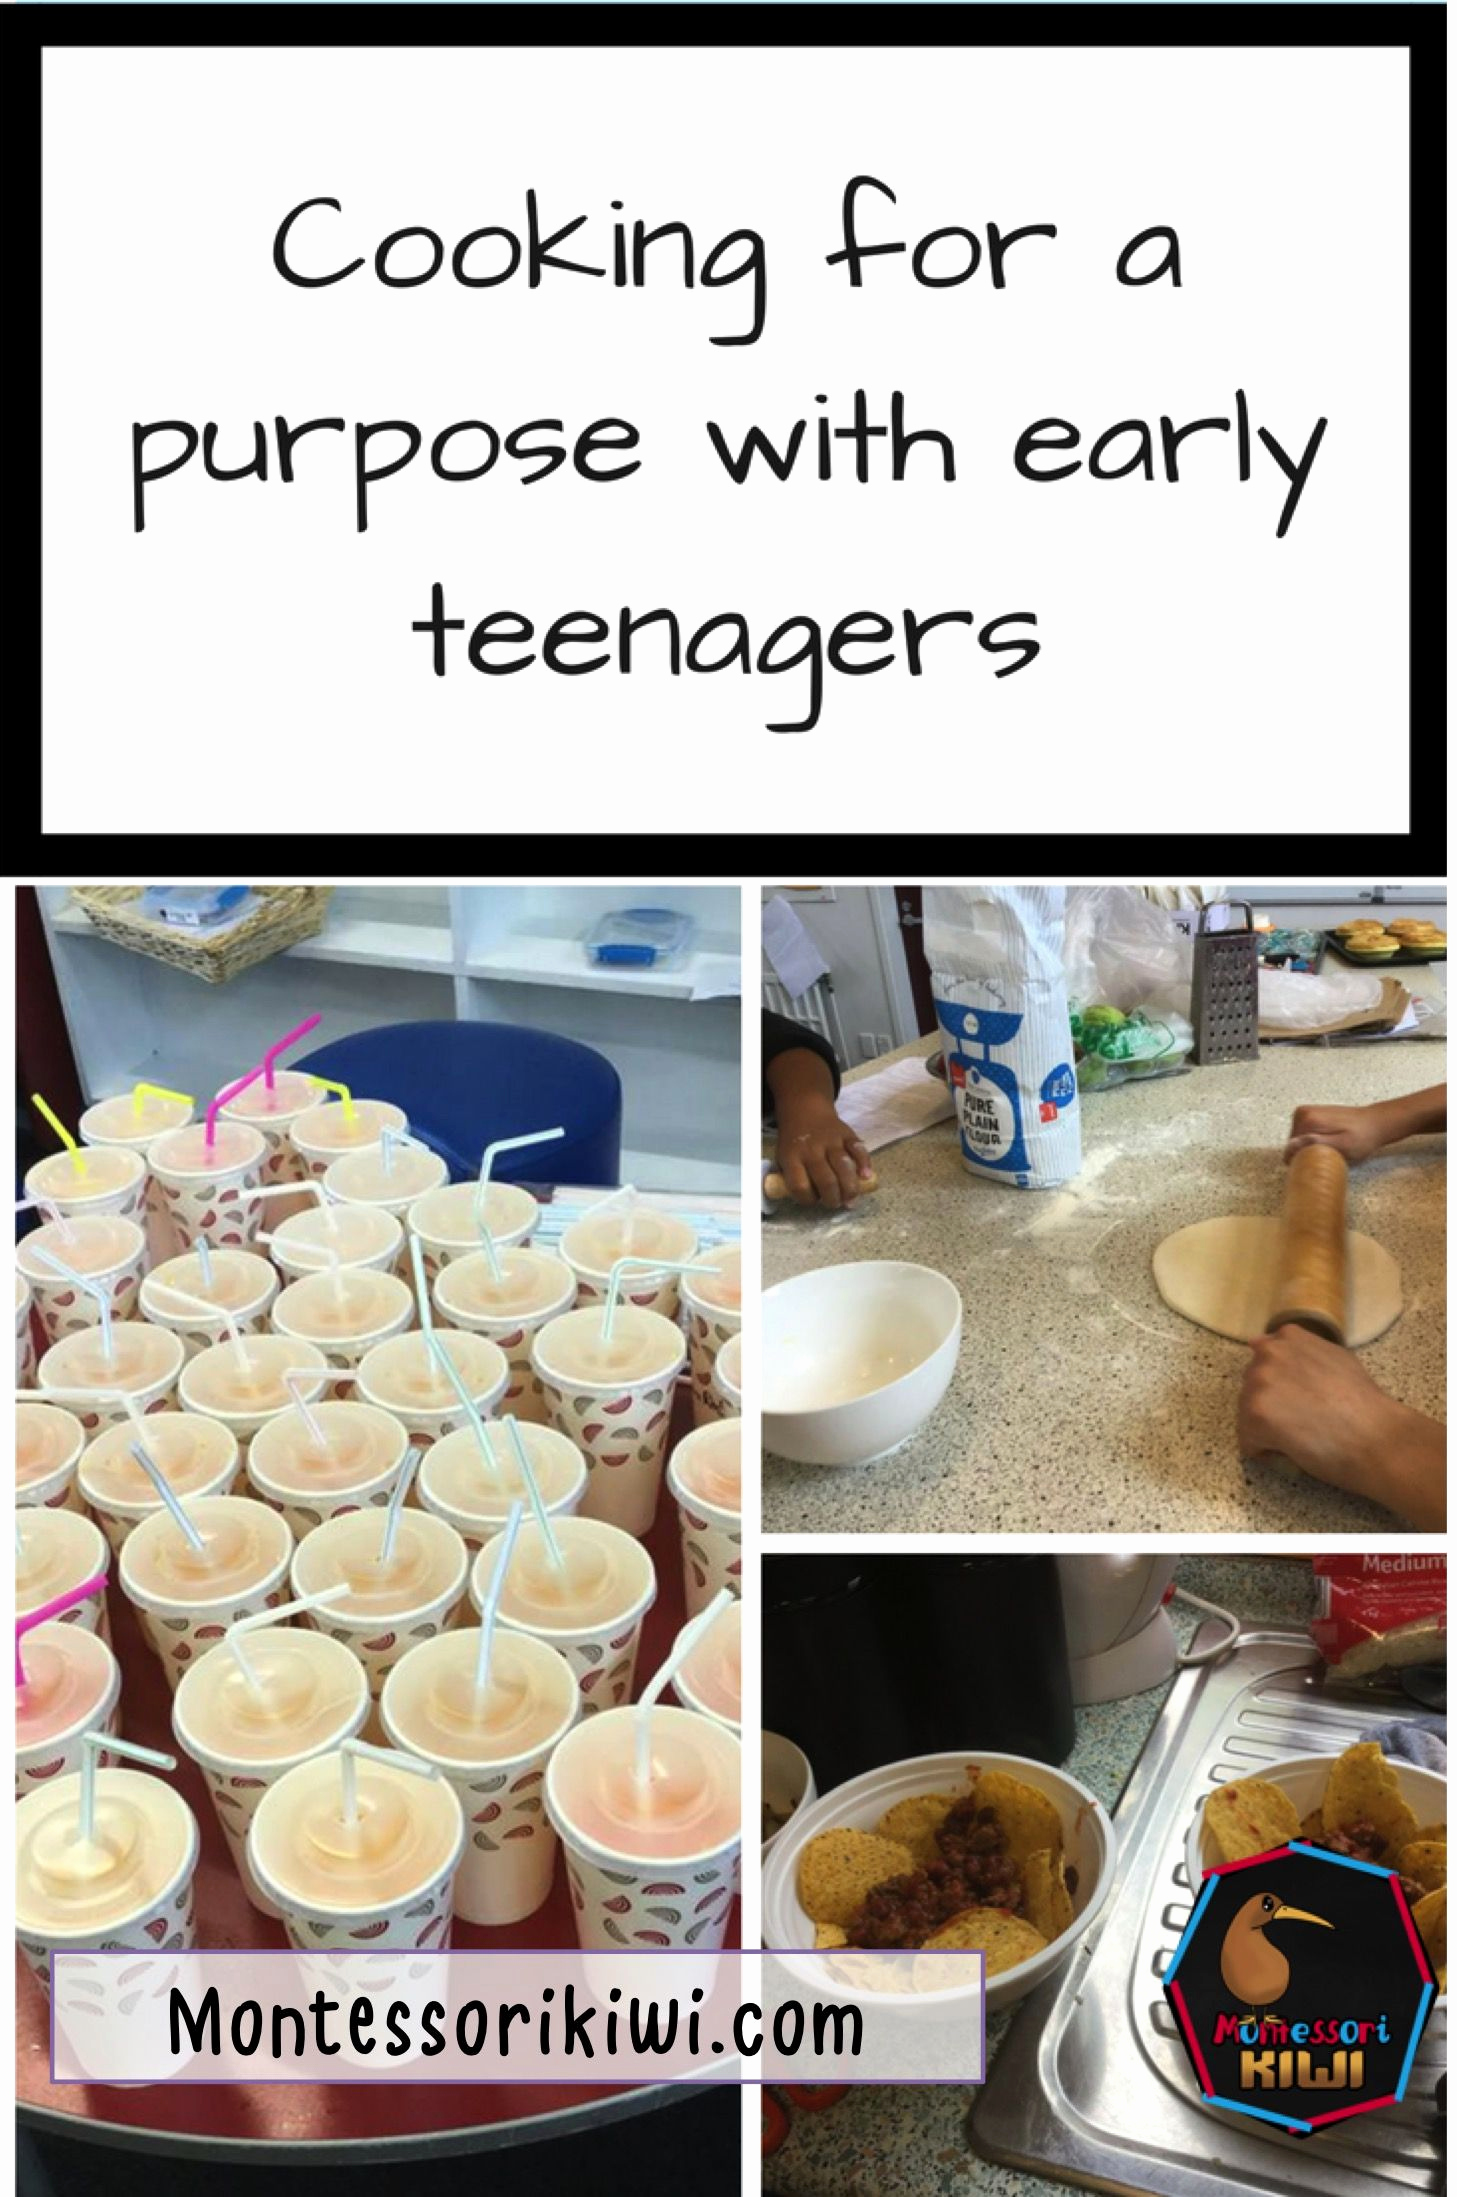 Cooking Worksheets for Middle School New Cooking for A Purpose with Early Teenagers